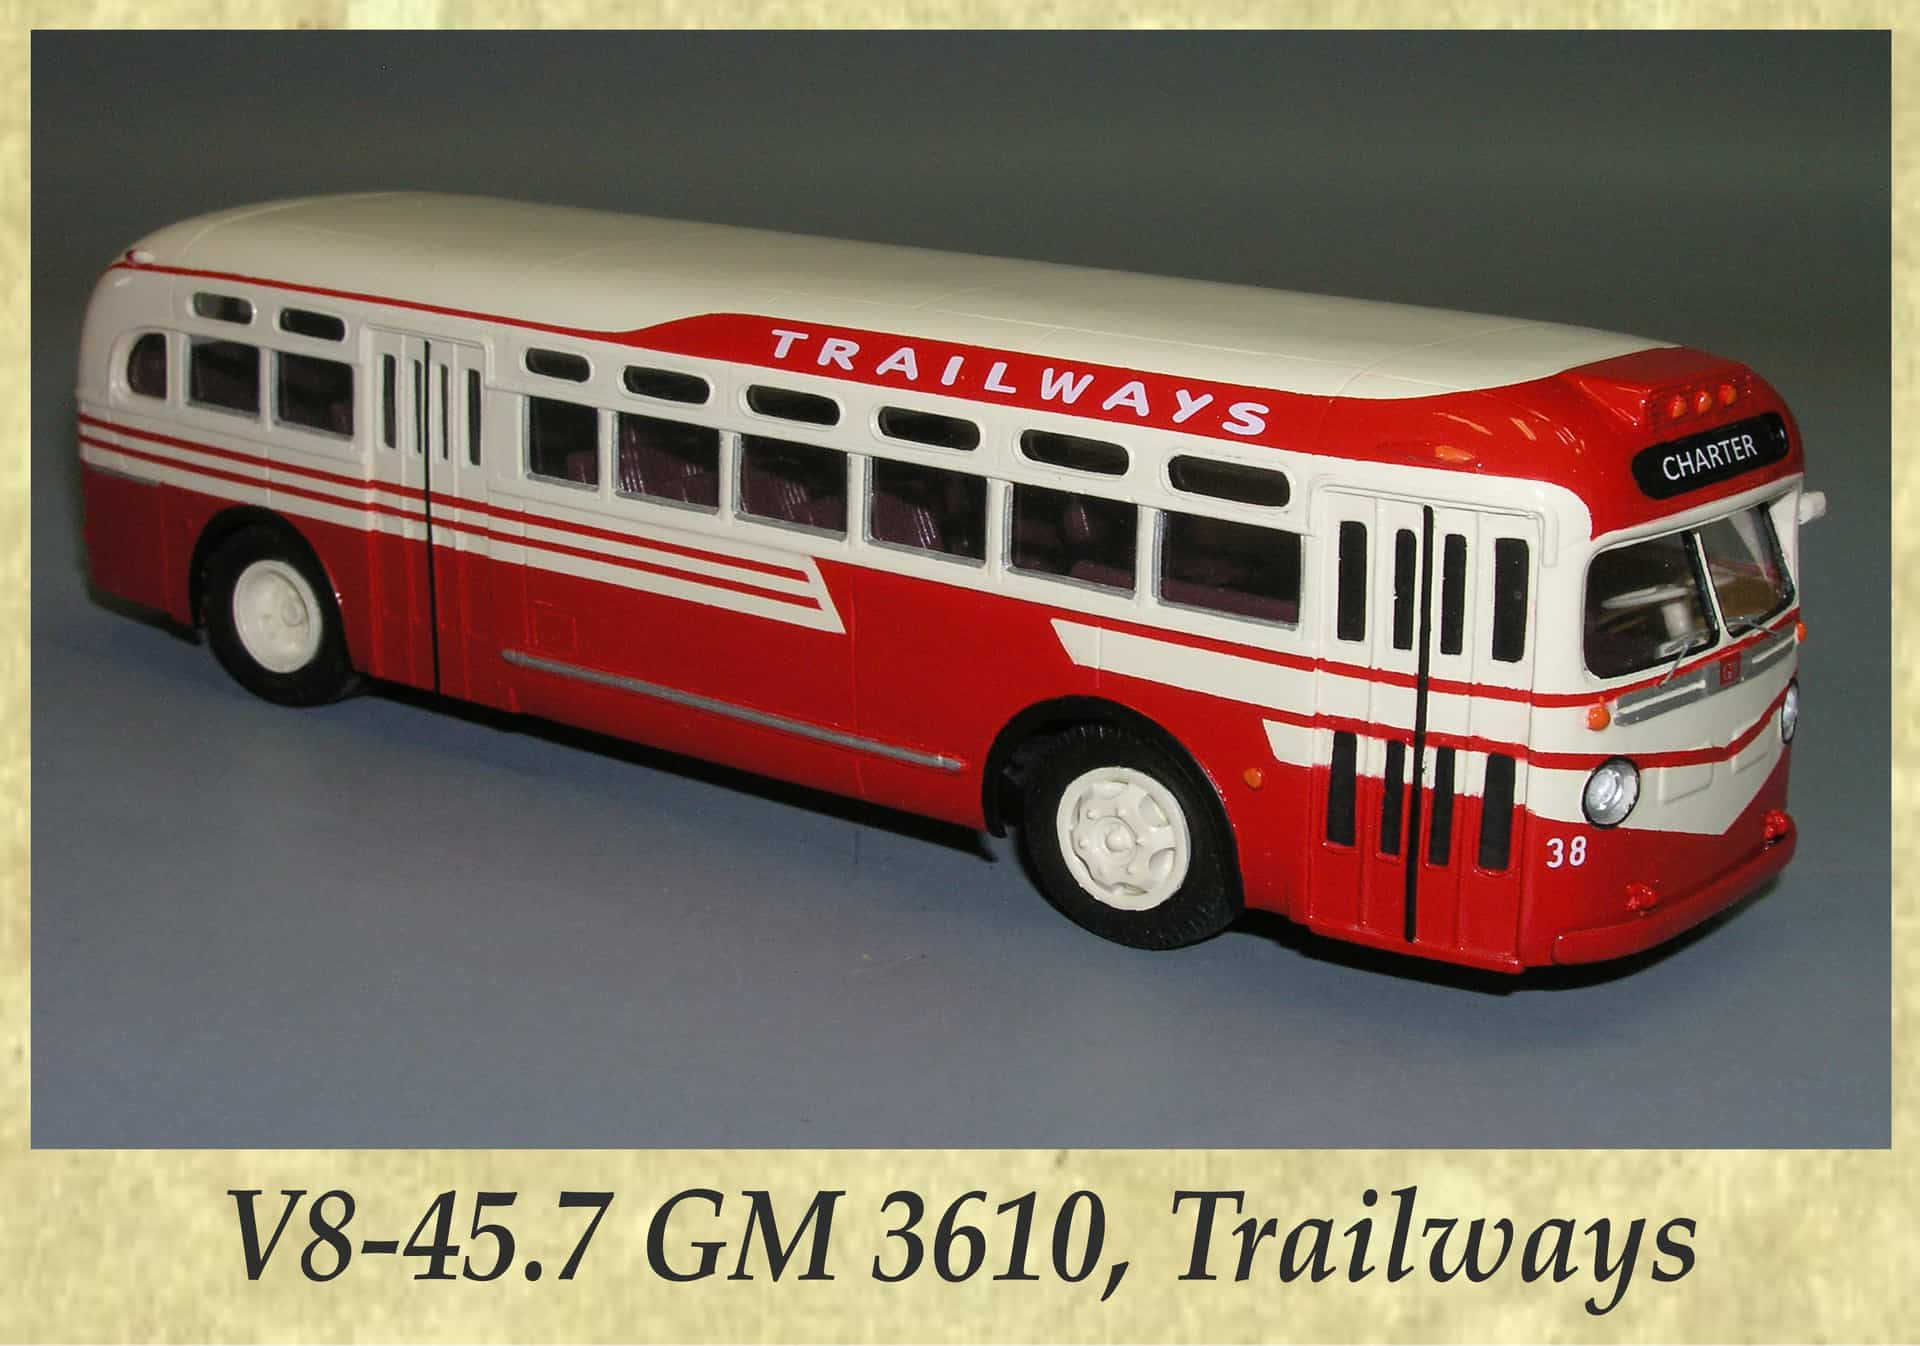 V8-45.7 GM 3610, Trailways